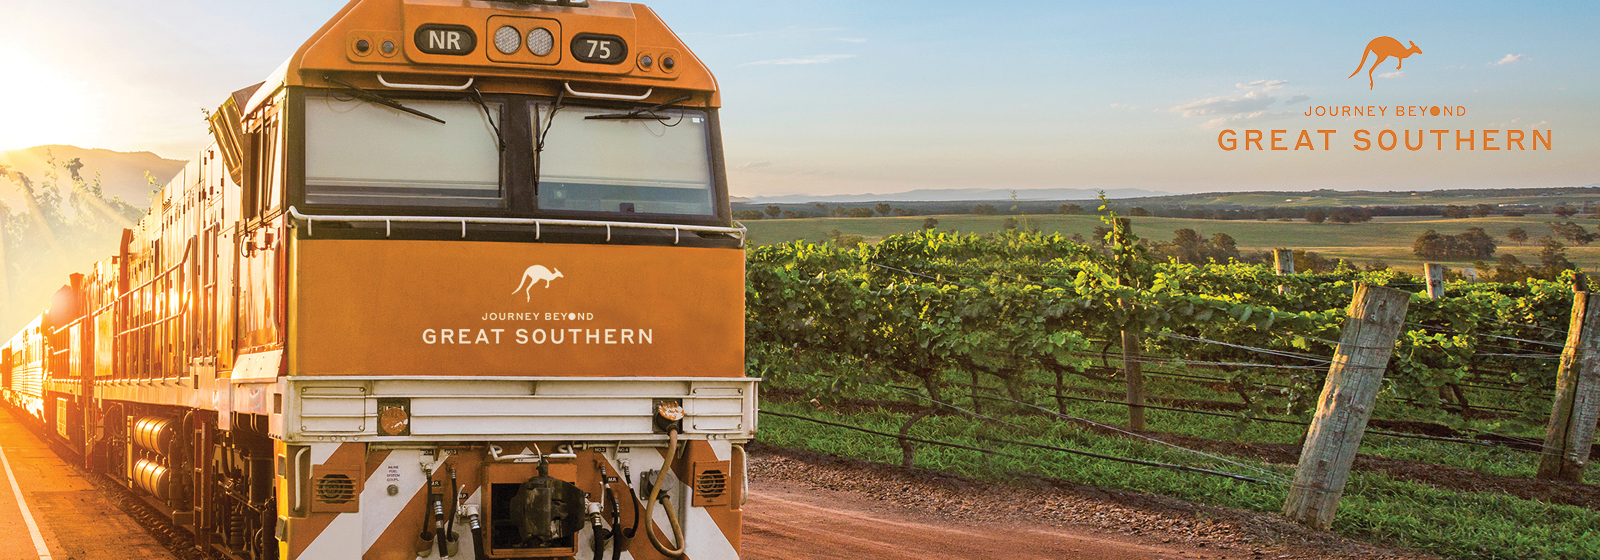 Journey Beyond - Great Southern1